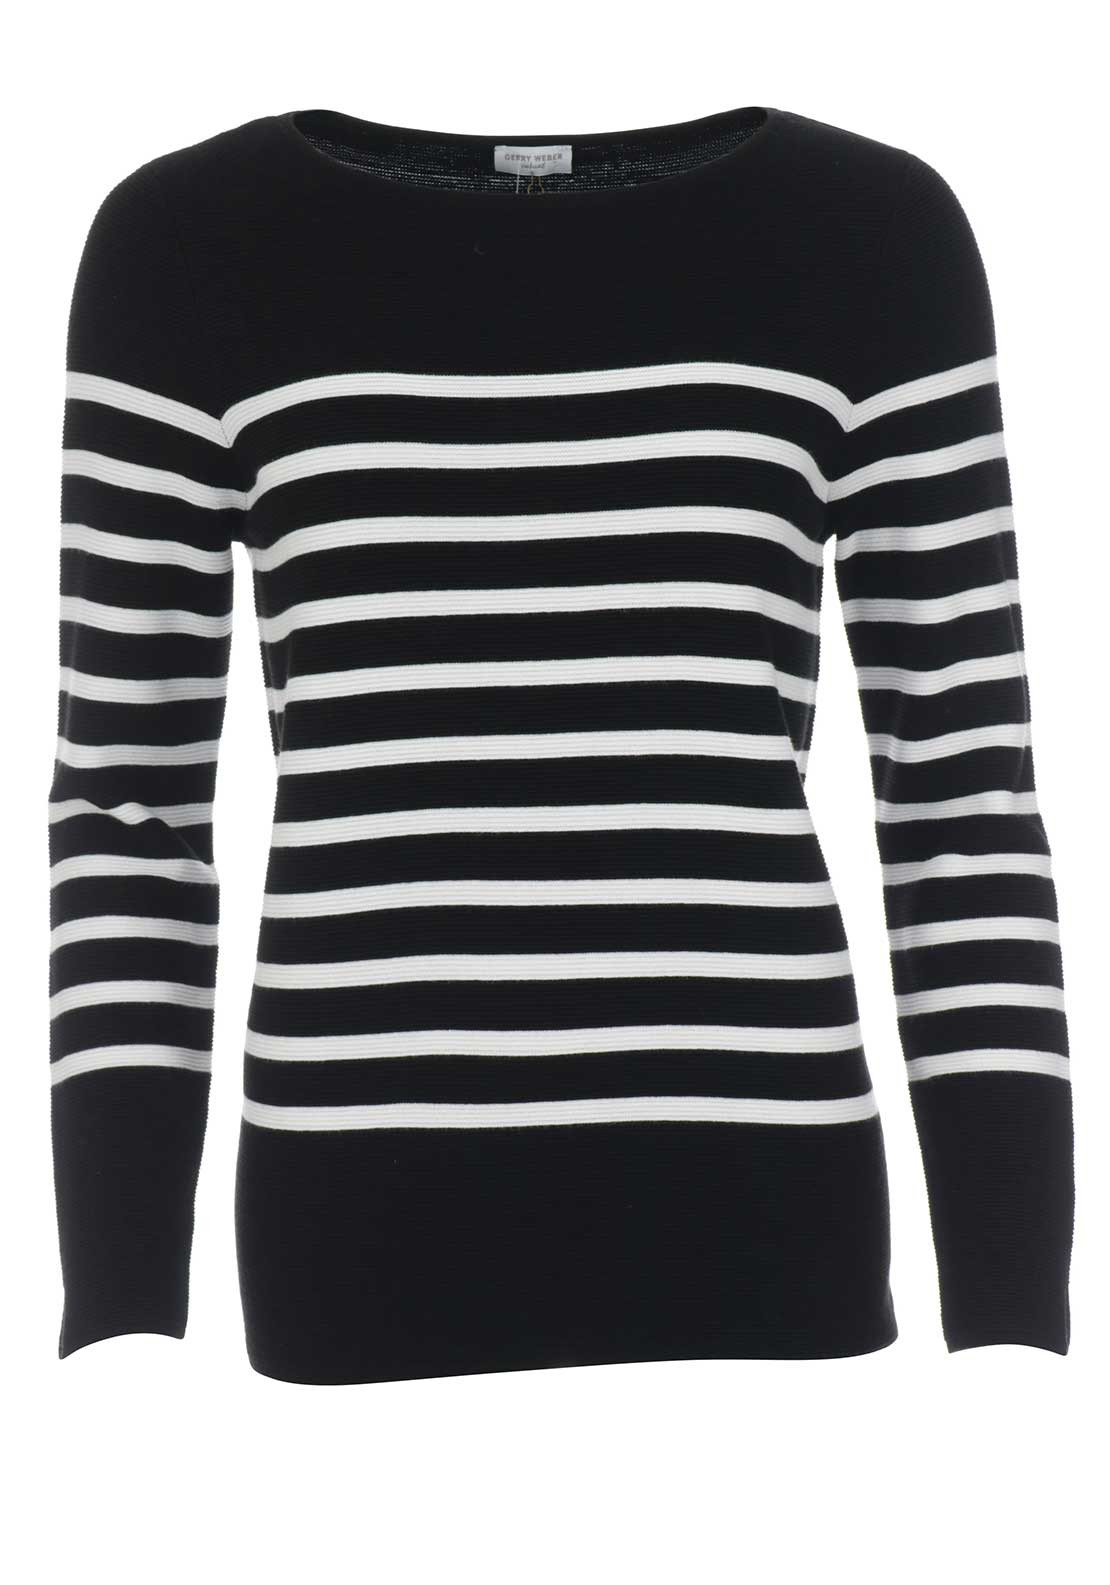 Gerry Weber Striped Rib Knit Jumper, Black & White